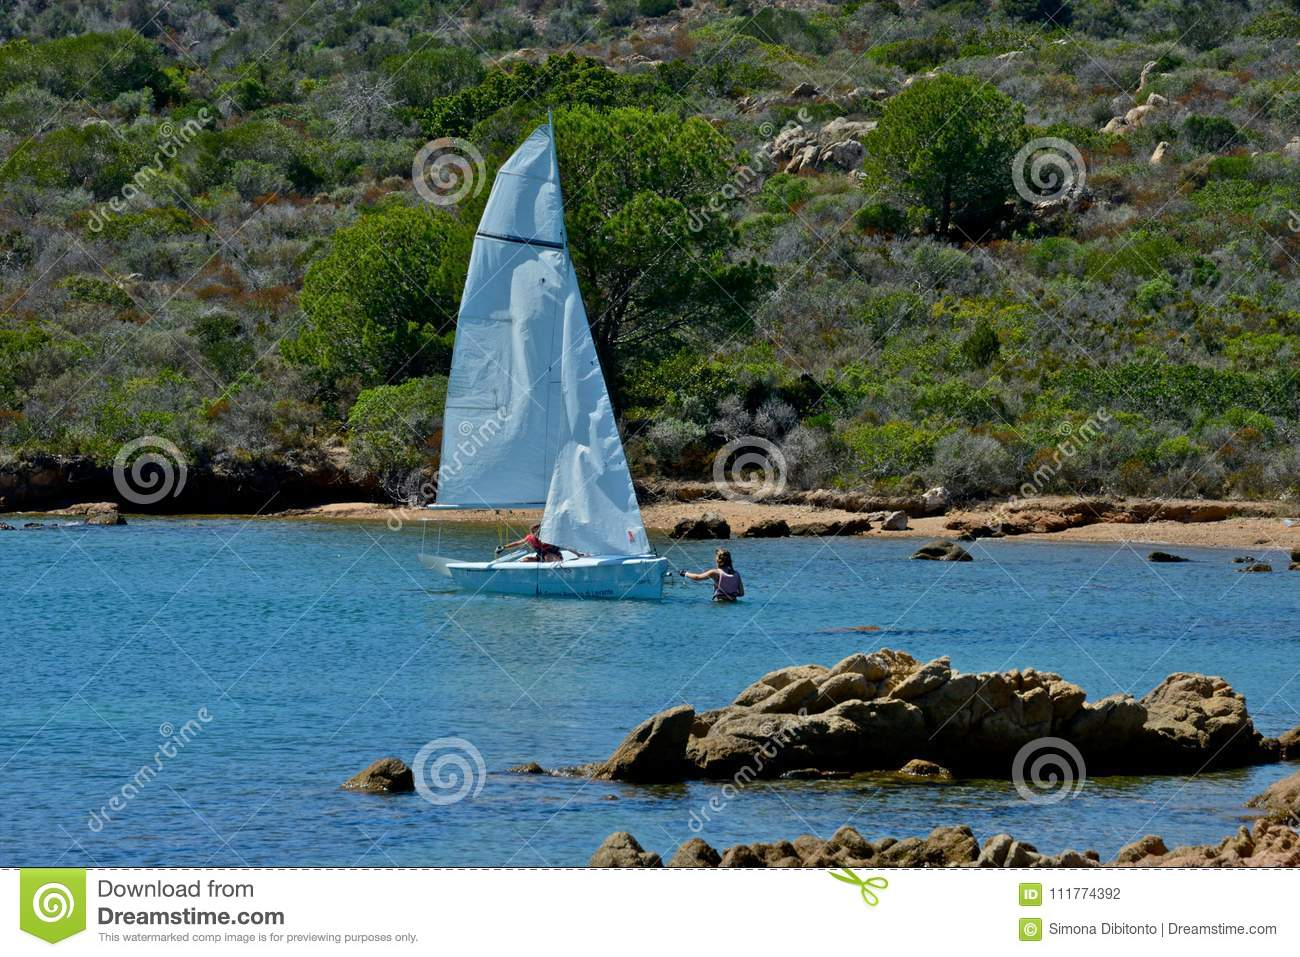 White sail boats with two people learning to sail in the blue sea surrounded by nature